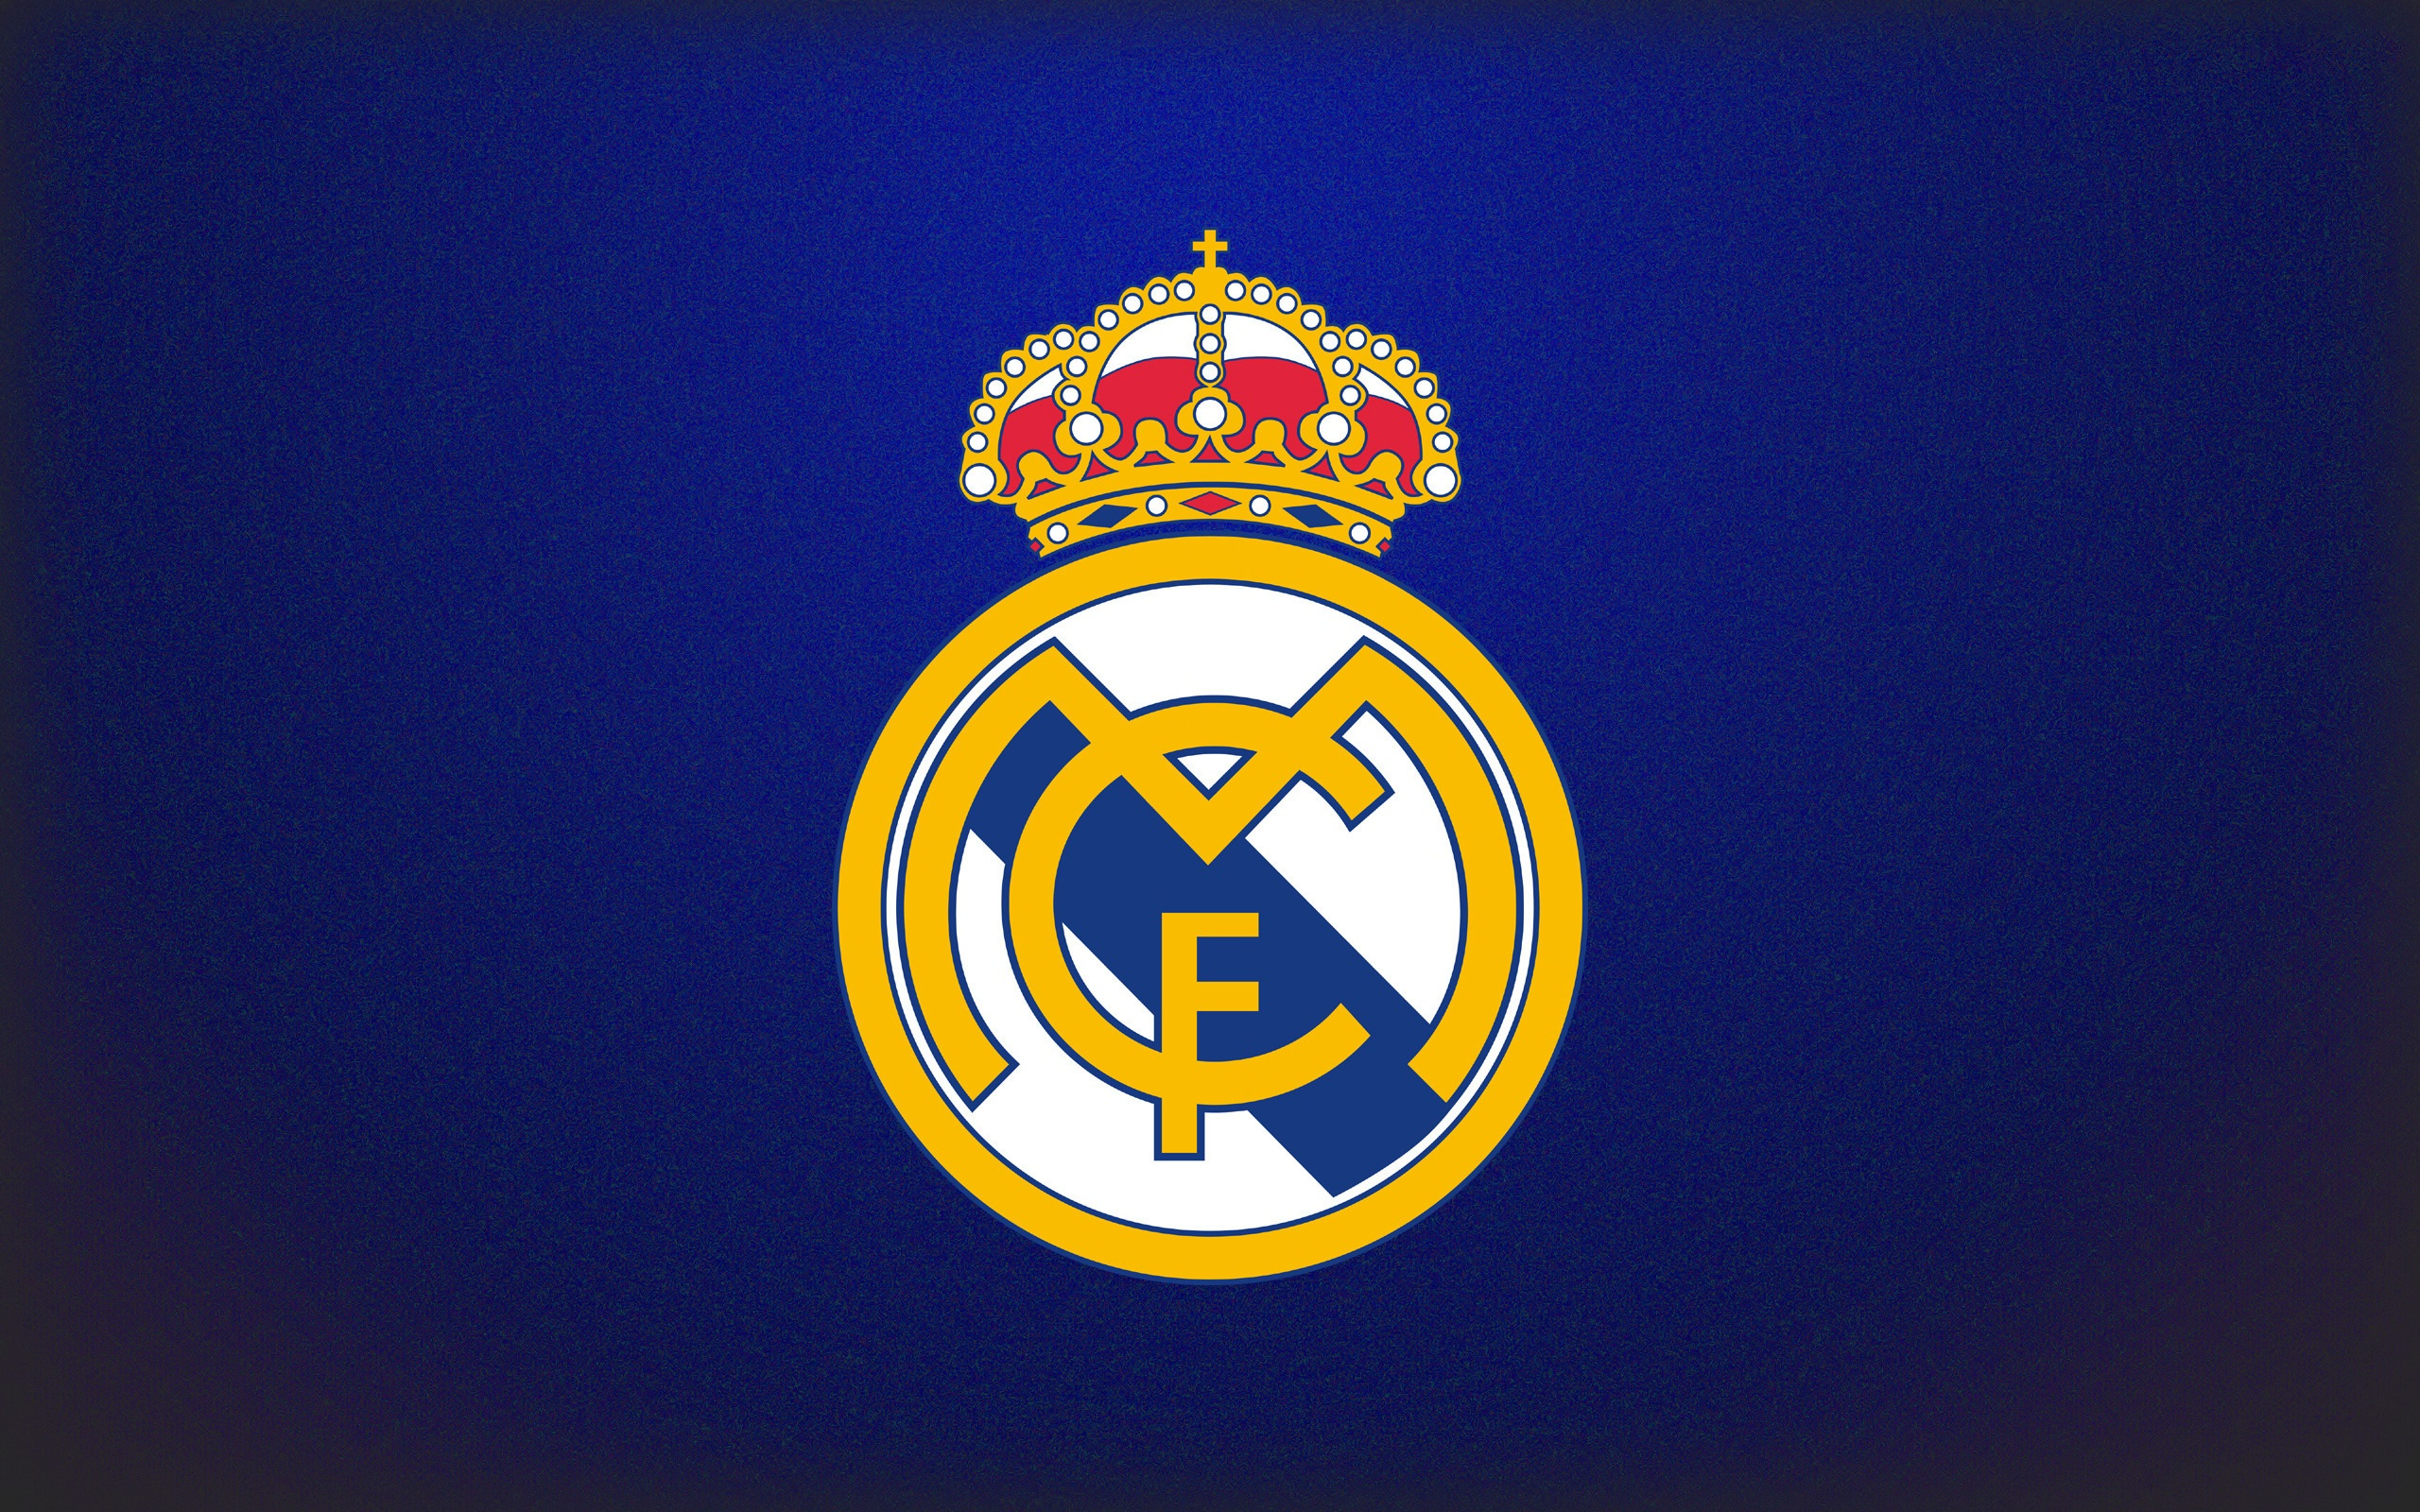 fondos de pantalla del real madrid wallpapers gratis